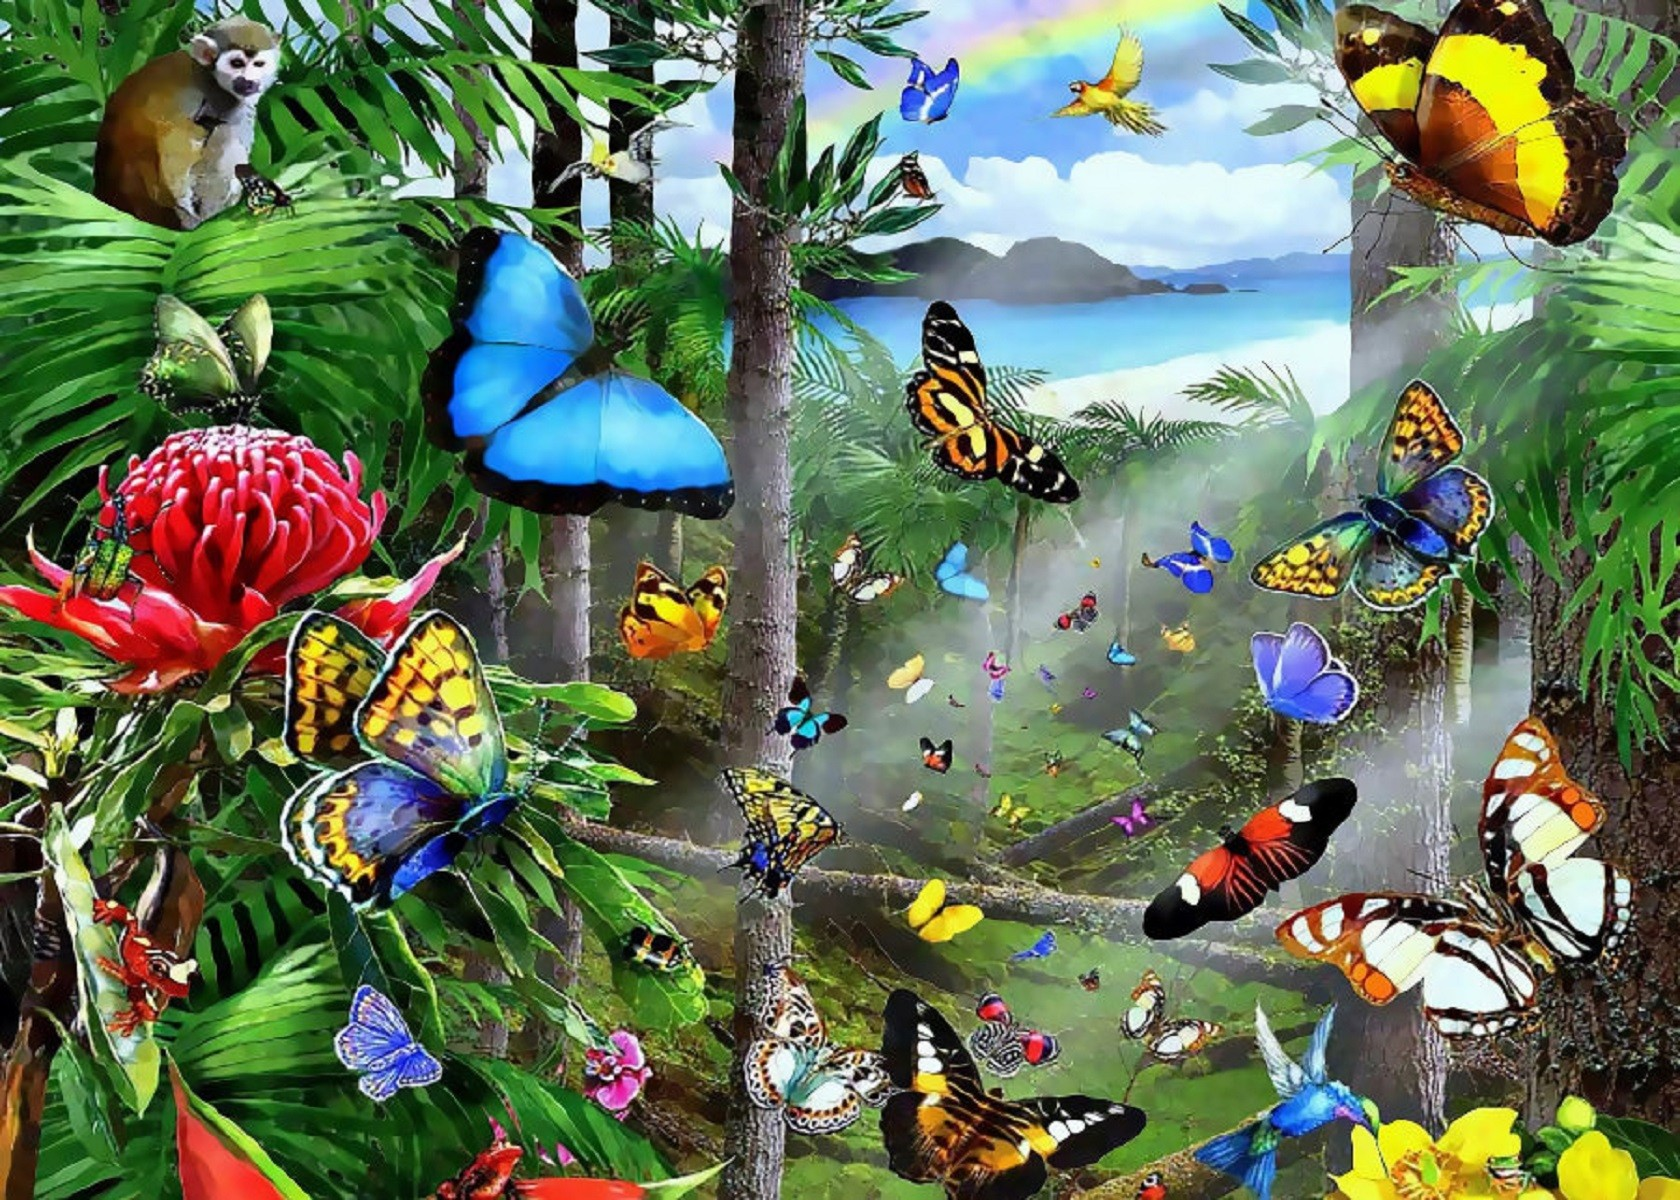 Bird Of Paradise Wallpaper Iphone 5 Butterflies In The Rainforest Wallpaper And Background